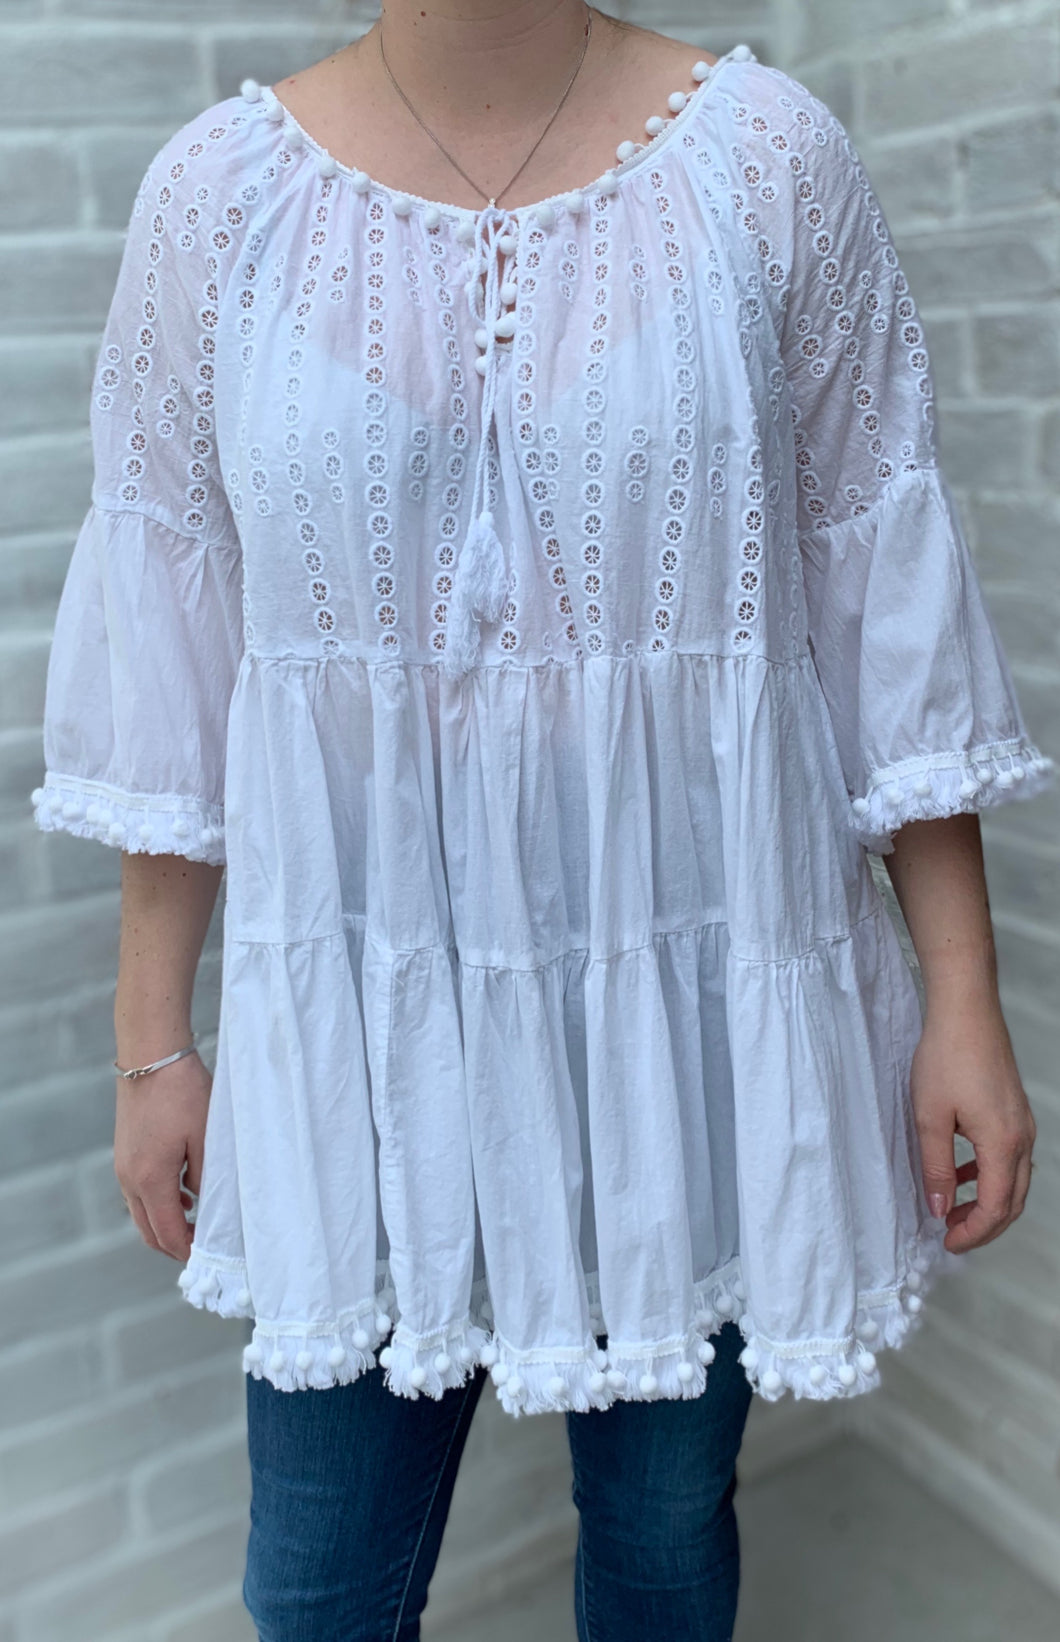 White Smock top or Dress